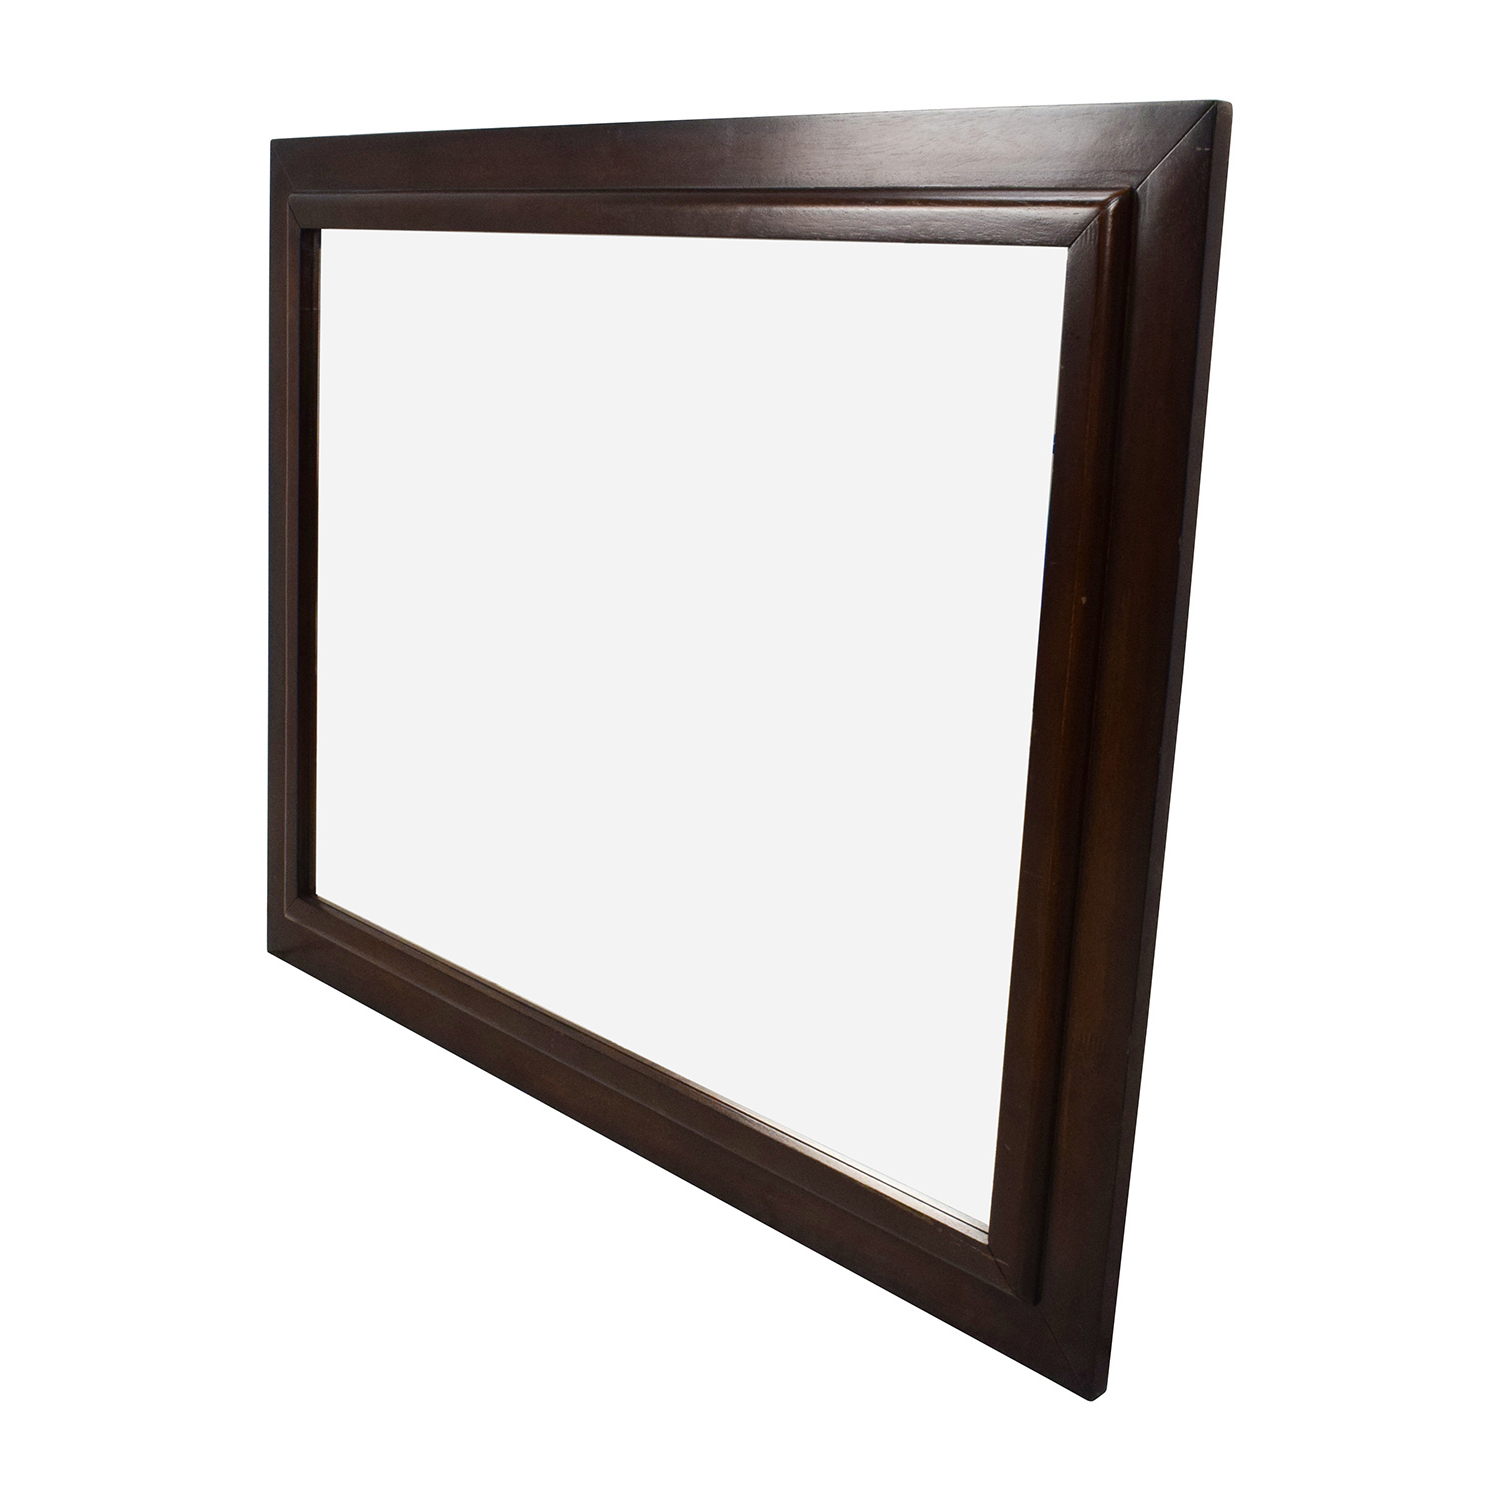 [%80% Off – Large Square Wood Framed Wall Mirror / Decor Regarding Well Known Large Square Wall Mirrors|Large Square Wall Mirrors Within Well Known 80% Off – Large Square Wood Framed Wall Mirror / Decor|Most Recently Released Large Square Wall Mirrors Throughout 80% Off – Large Square Wood Framed Wall Mirror / Decor|Newest 80% Off – Large Square Wood Framed Wall Mirror / Decor With Large Square Wall Mirrors%] (View 2 of 20)